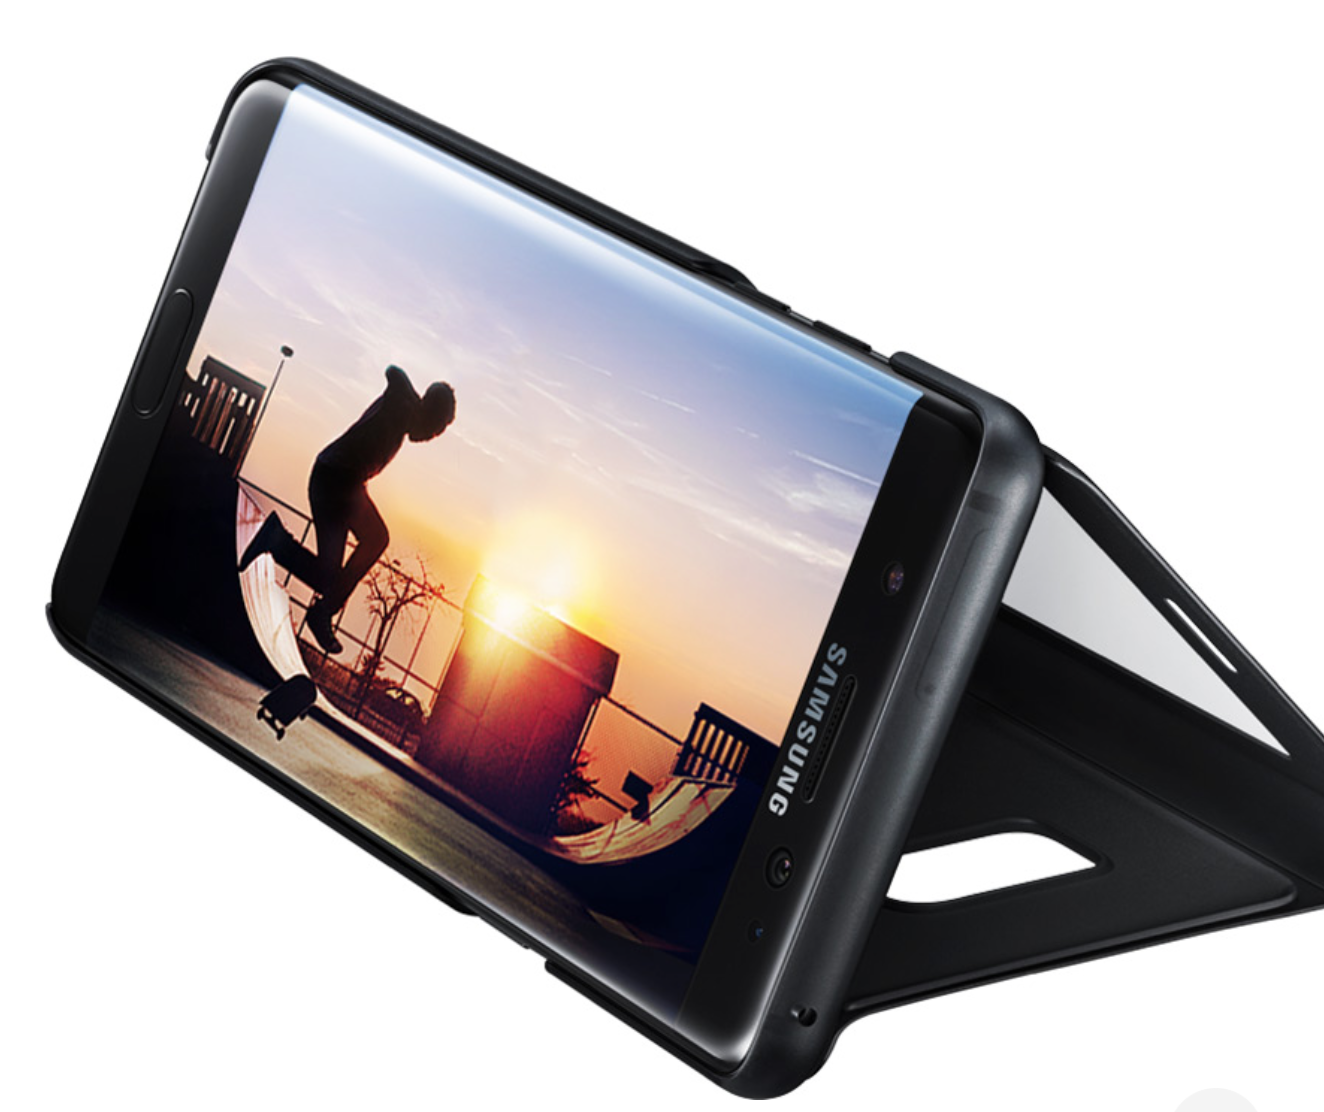 Here are the official accessories for the Samsung Galaxy